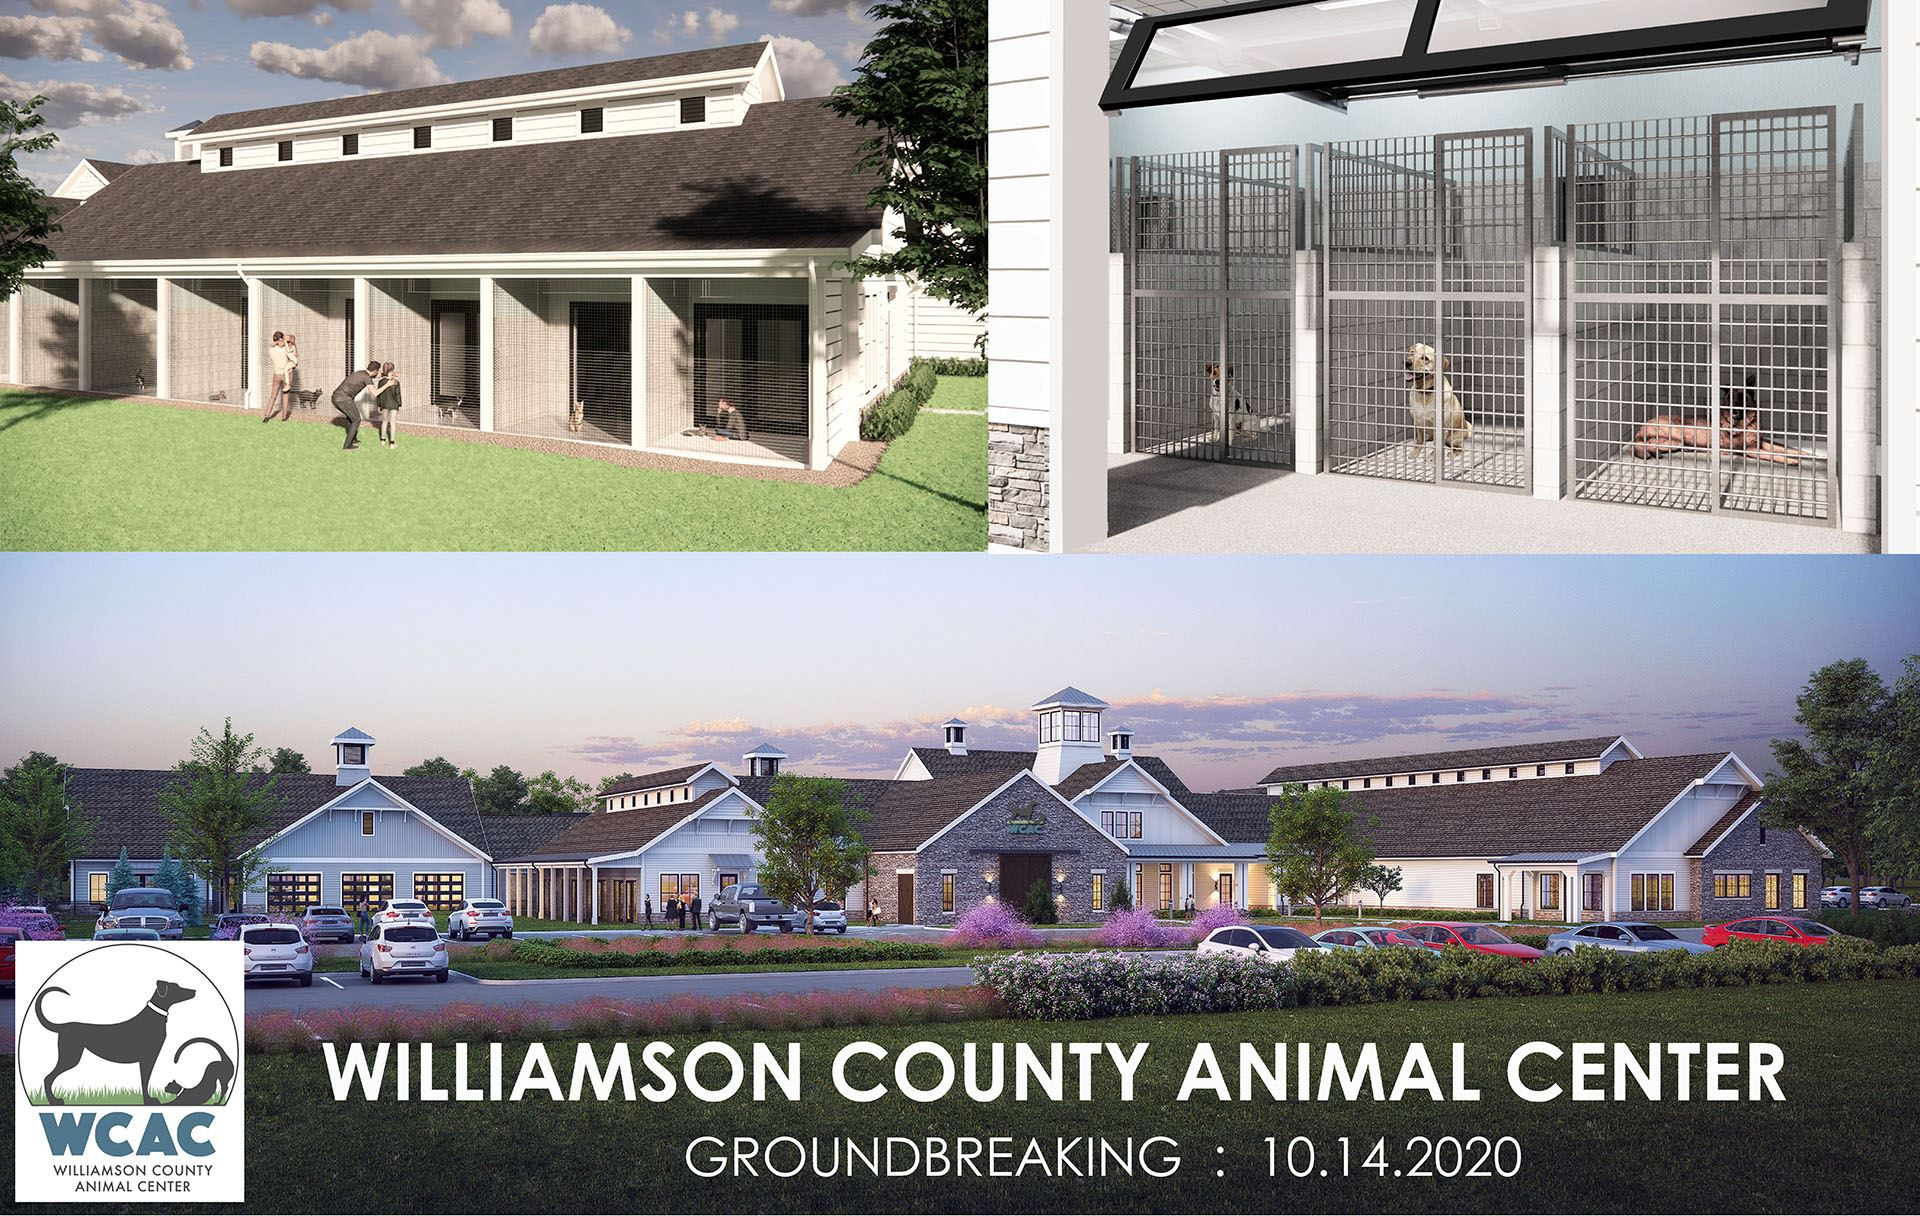 A rendering of the new Williamson County Animal Center to open in the fall of 2021.